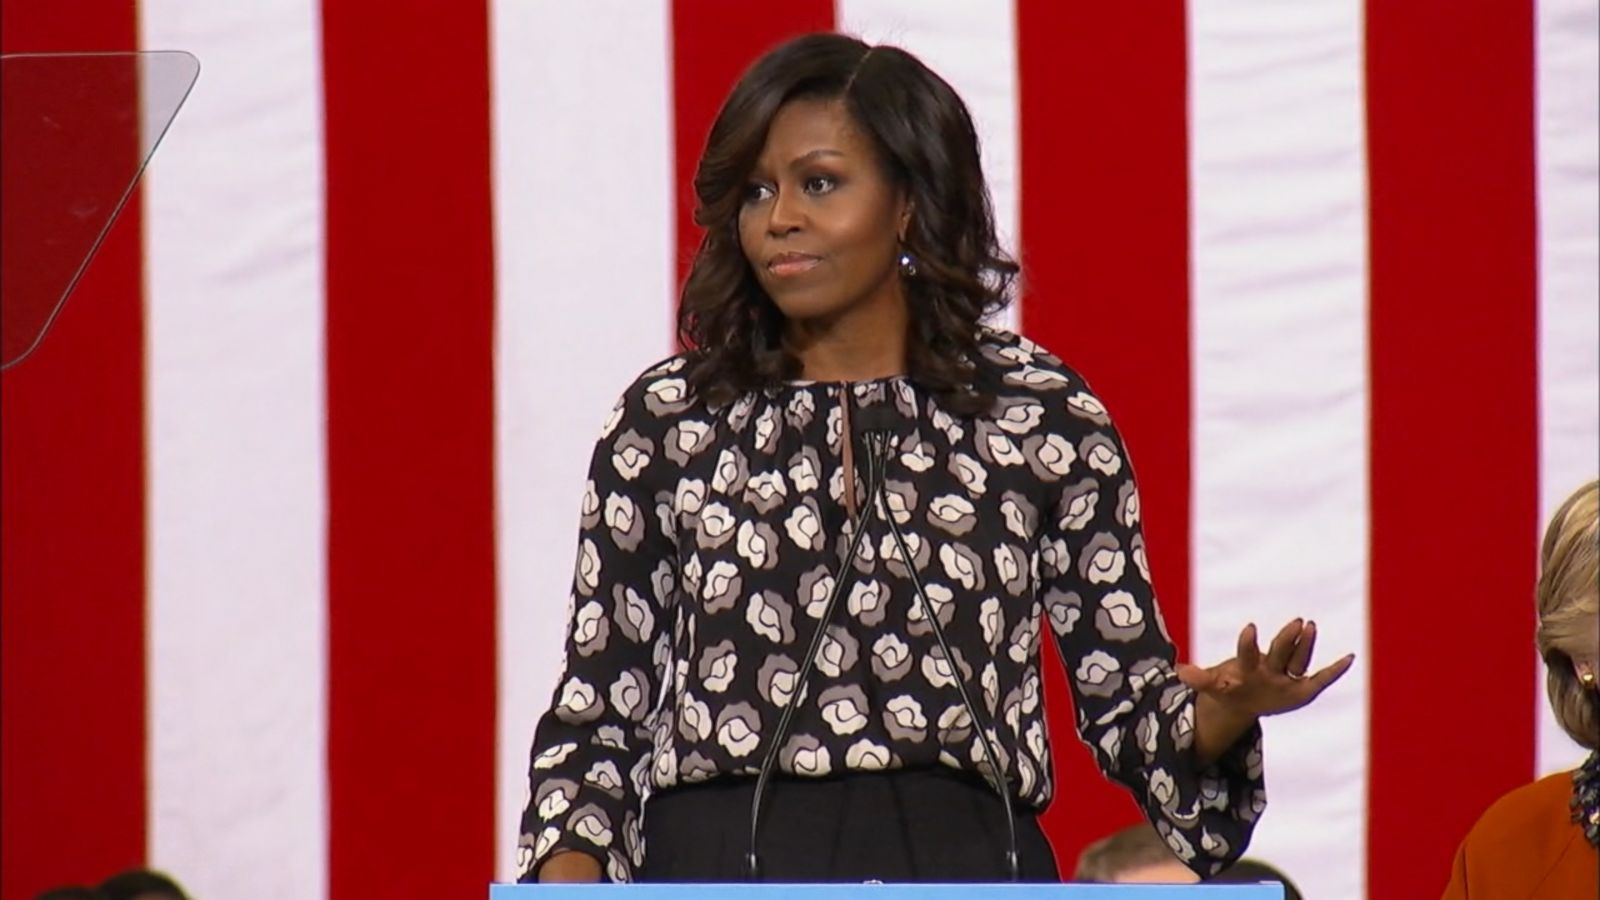 First lady Michelle Obama and Hillary Clinton took the stage together for the first time in this election at an early-vote rally in North Carolina today.